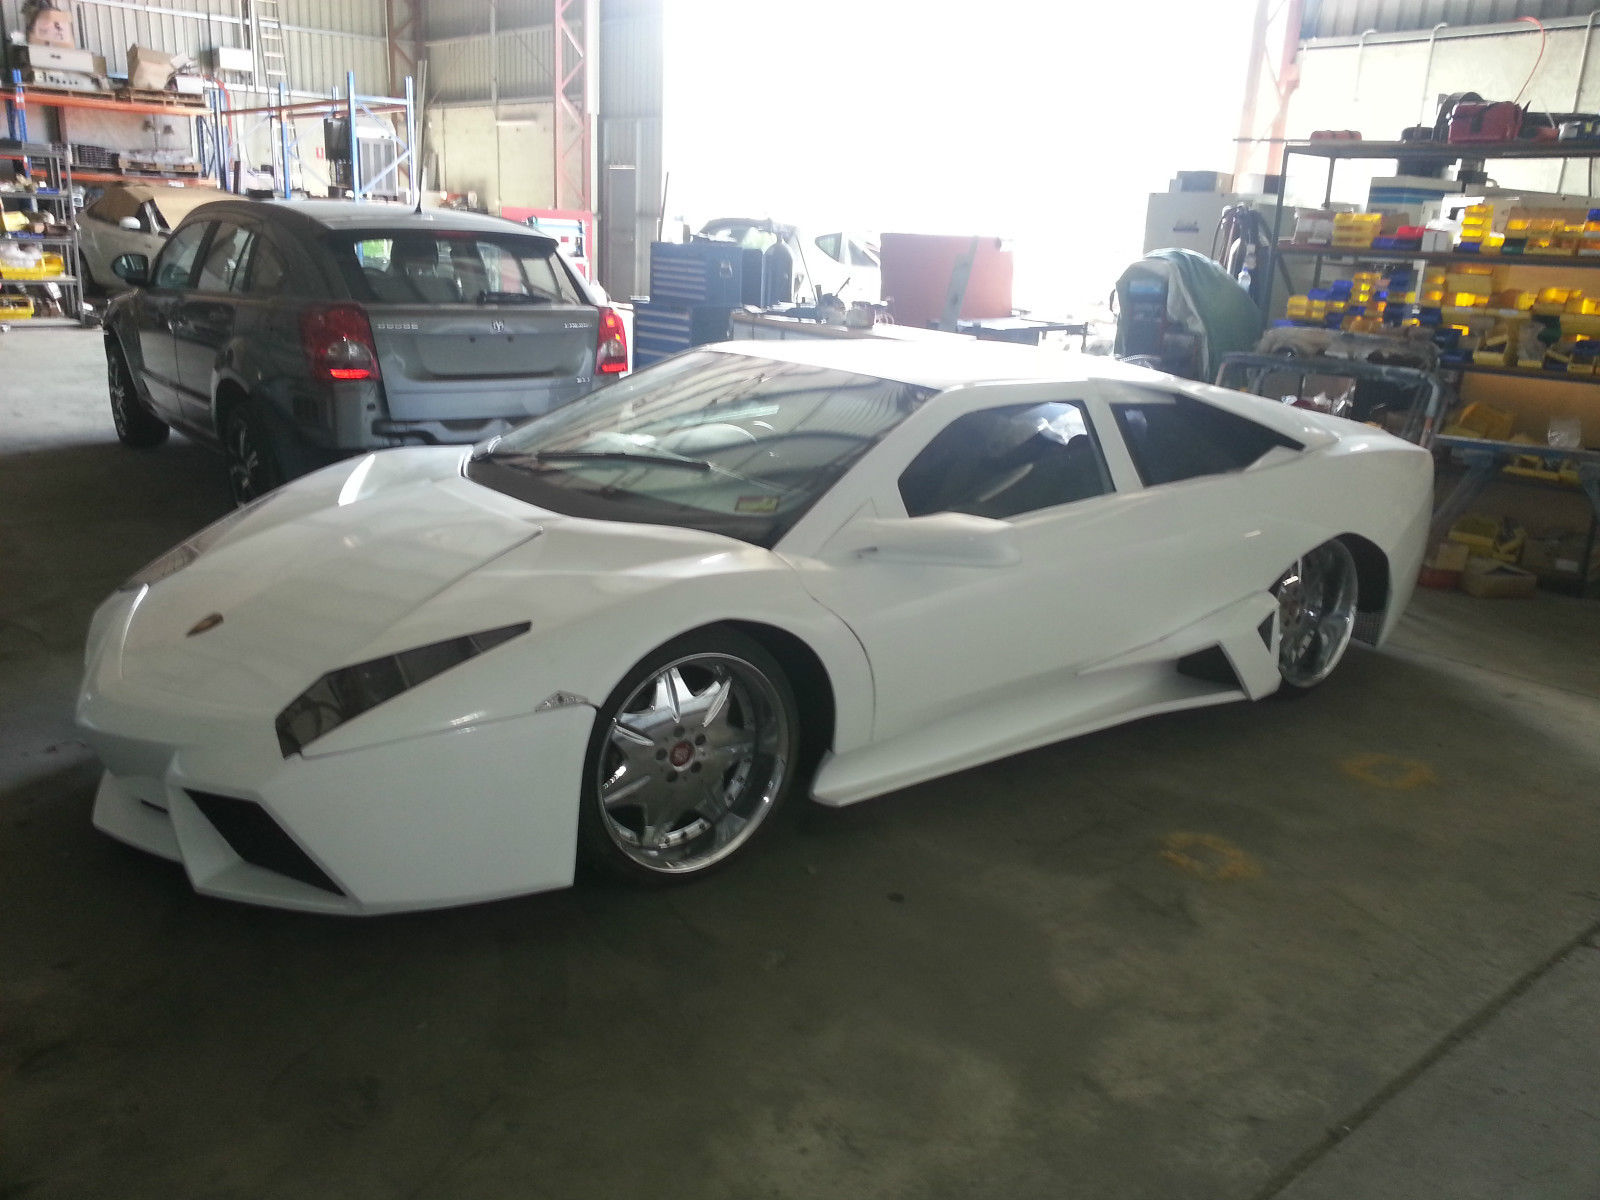 White Lamborghini Reventon Replica For Sale in Australia - GTspirit